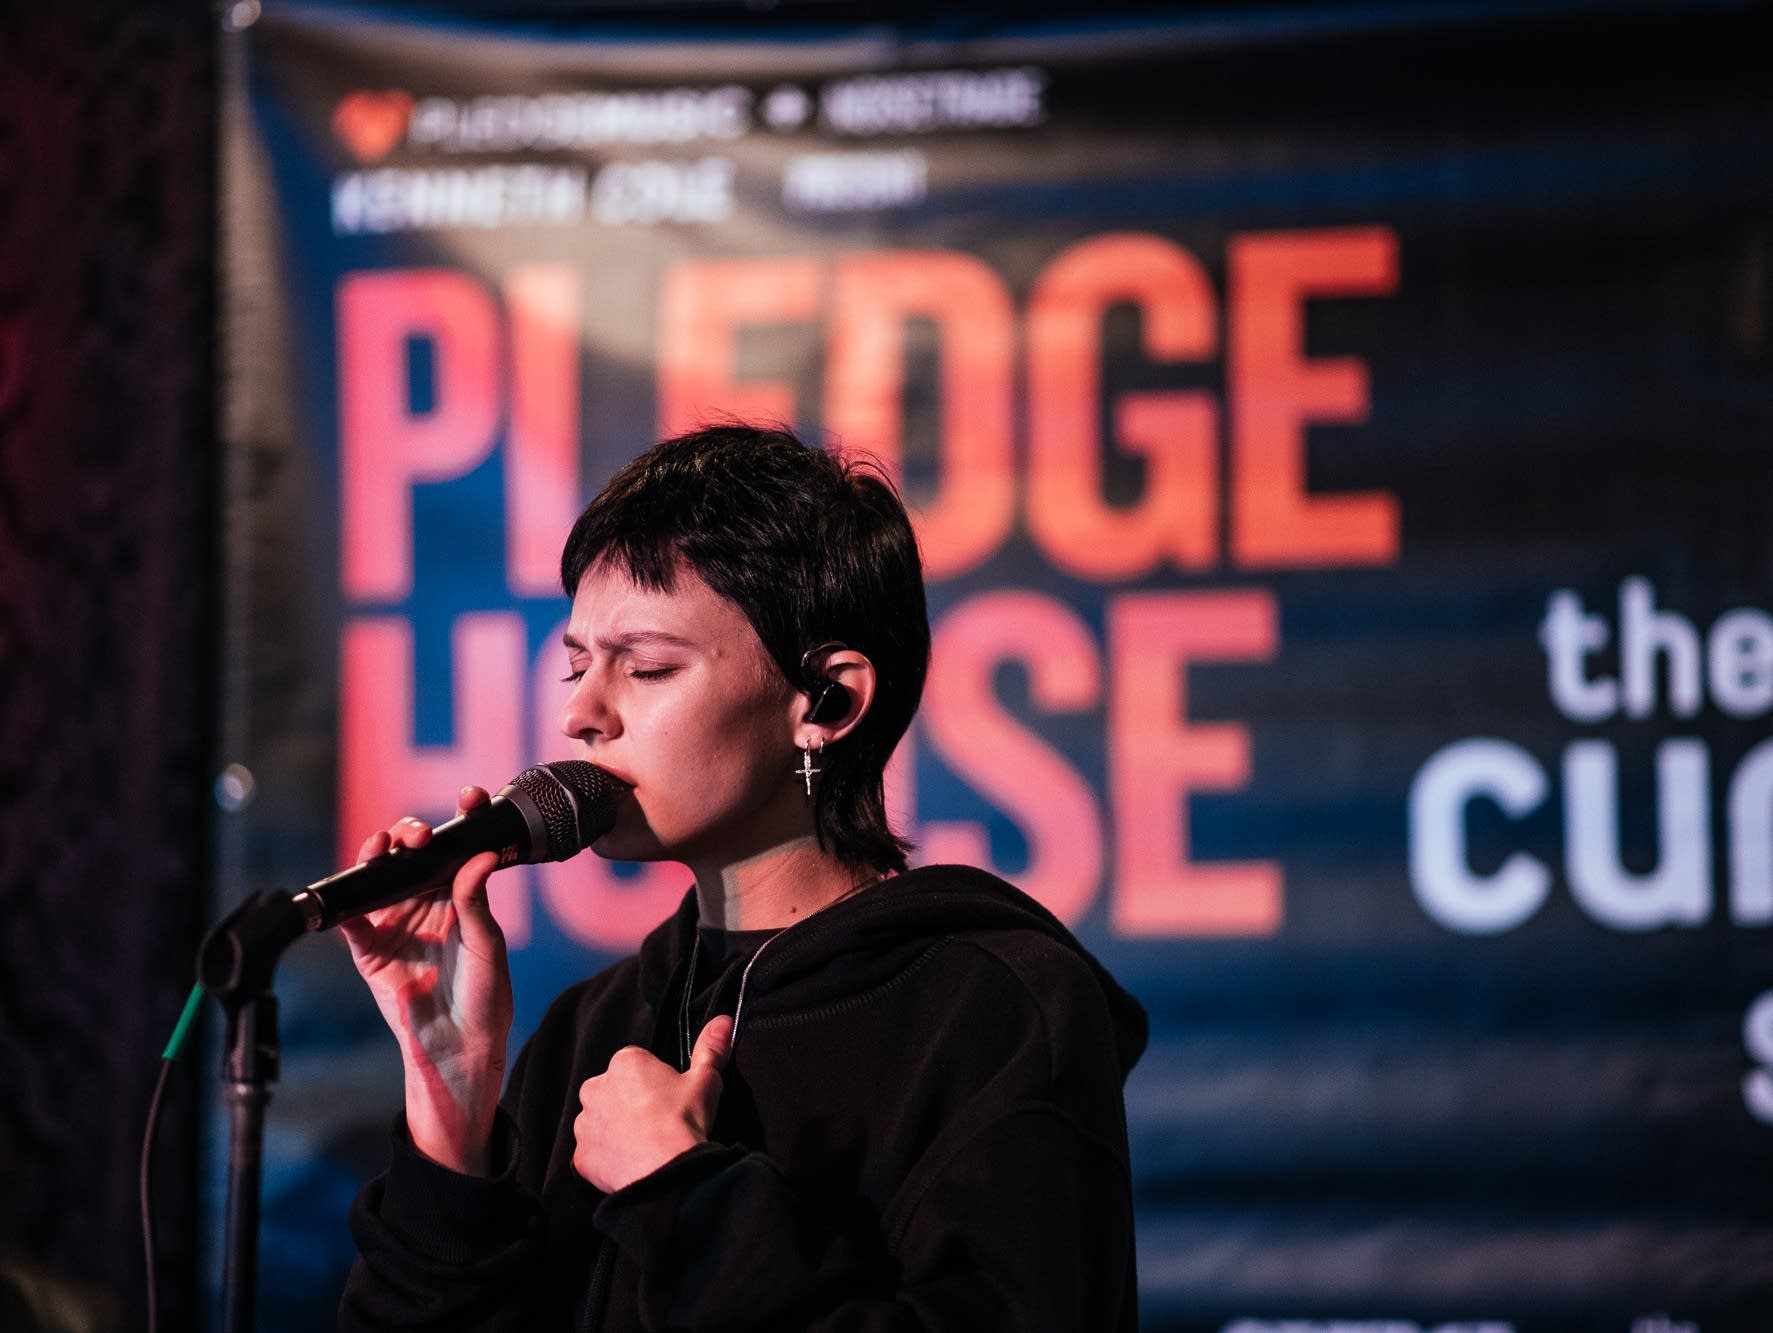 PledgeHouse SXSW Morgan Saint Son Little